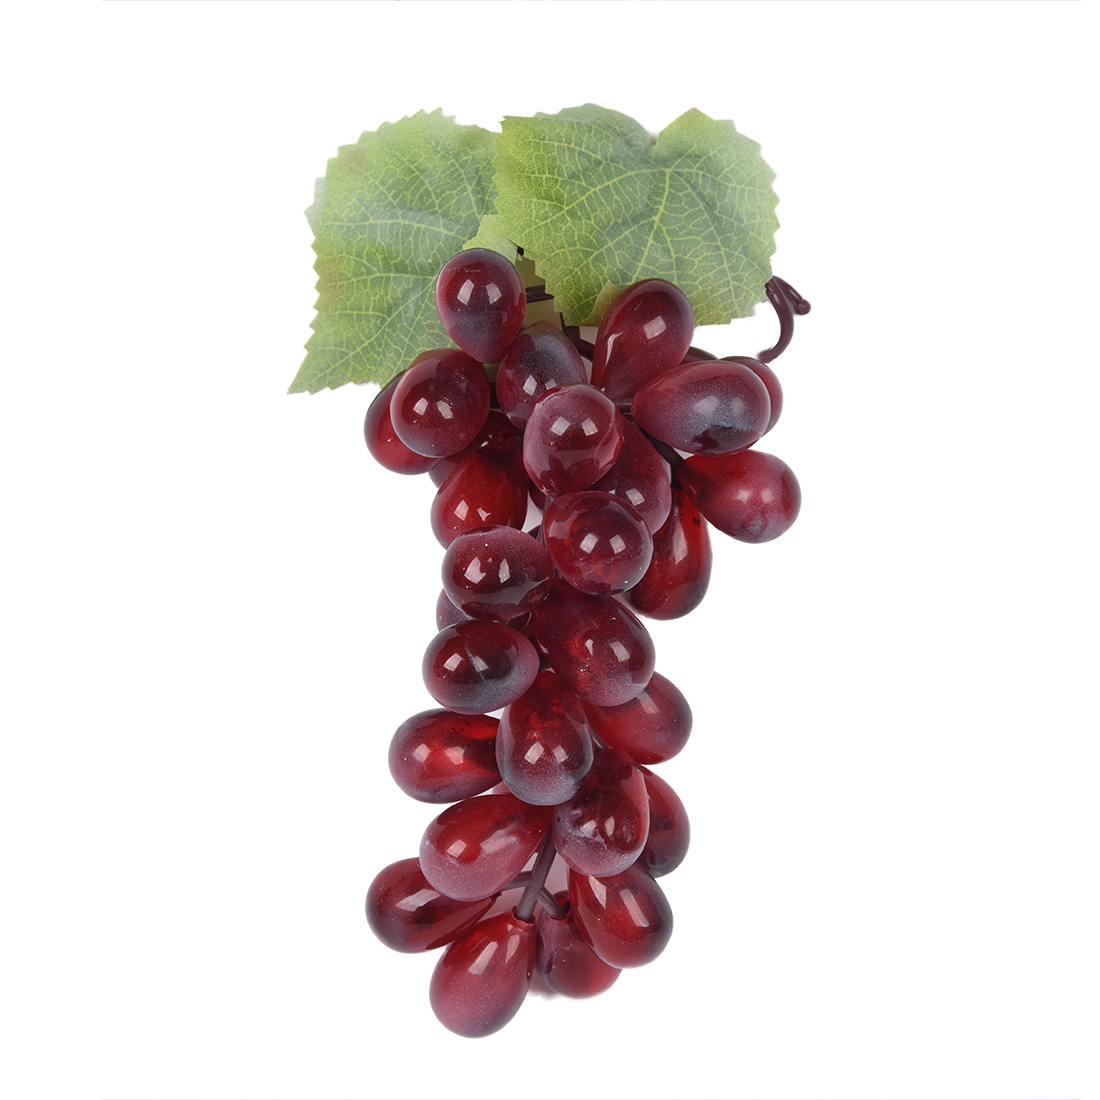 Purple soft plastic artificial grapes cluster fruit decor for Artificial grape vines decoration